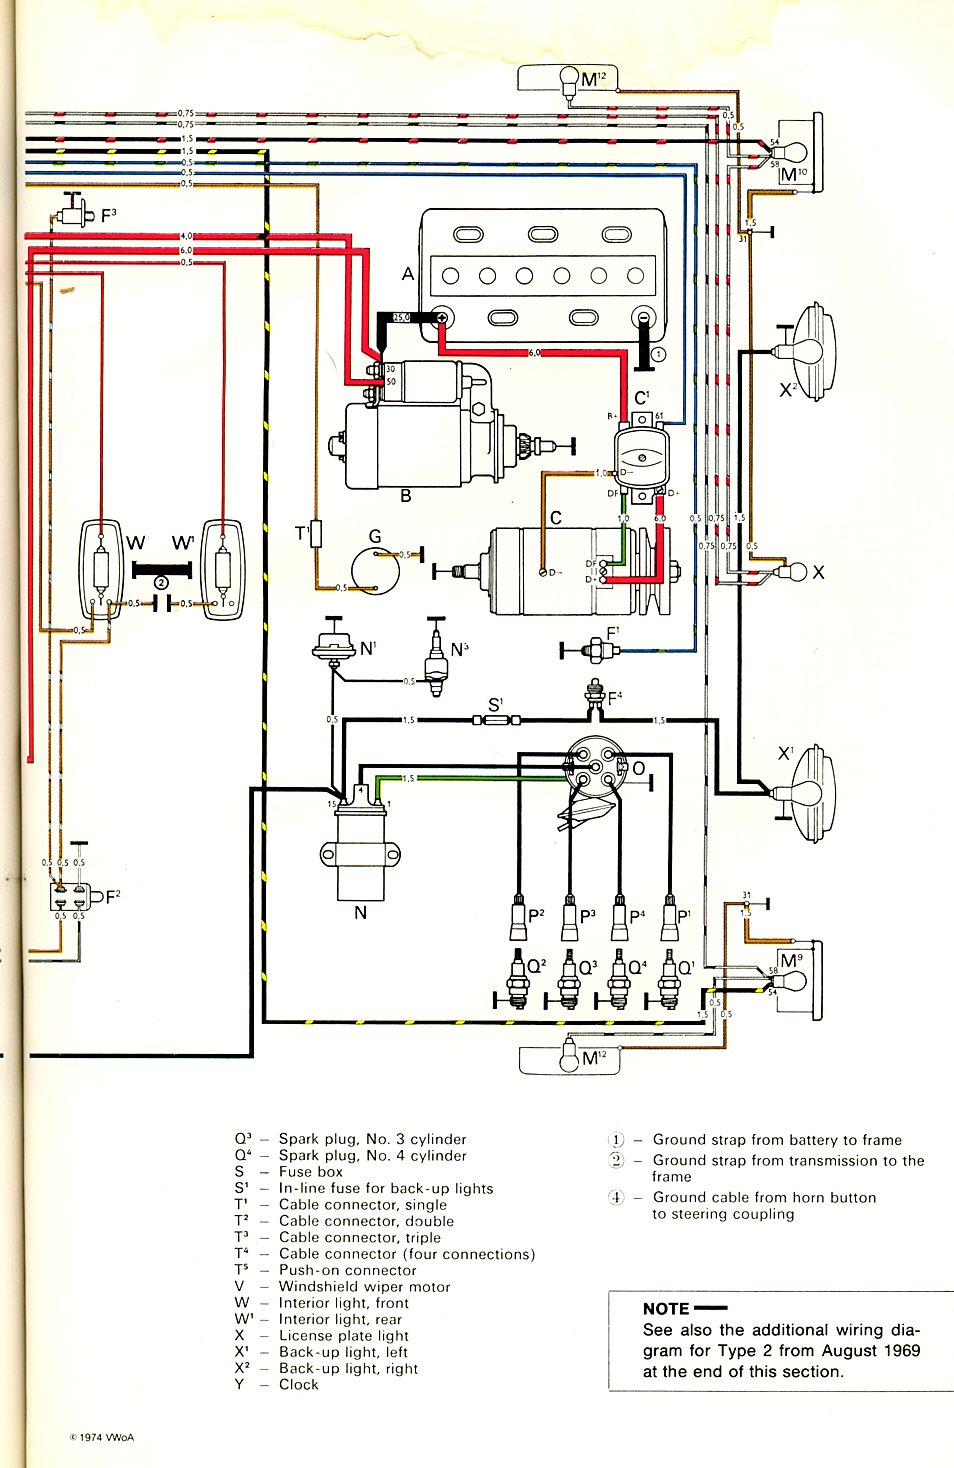 Type 2 Wiring Diagrams 1968 Gm Wiper Switch Diagram